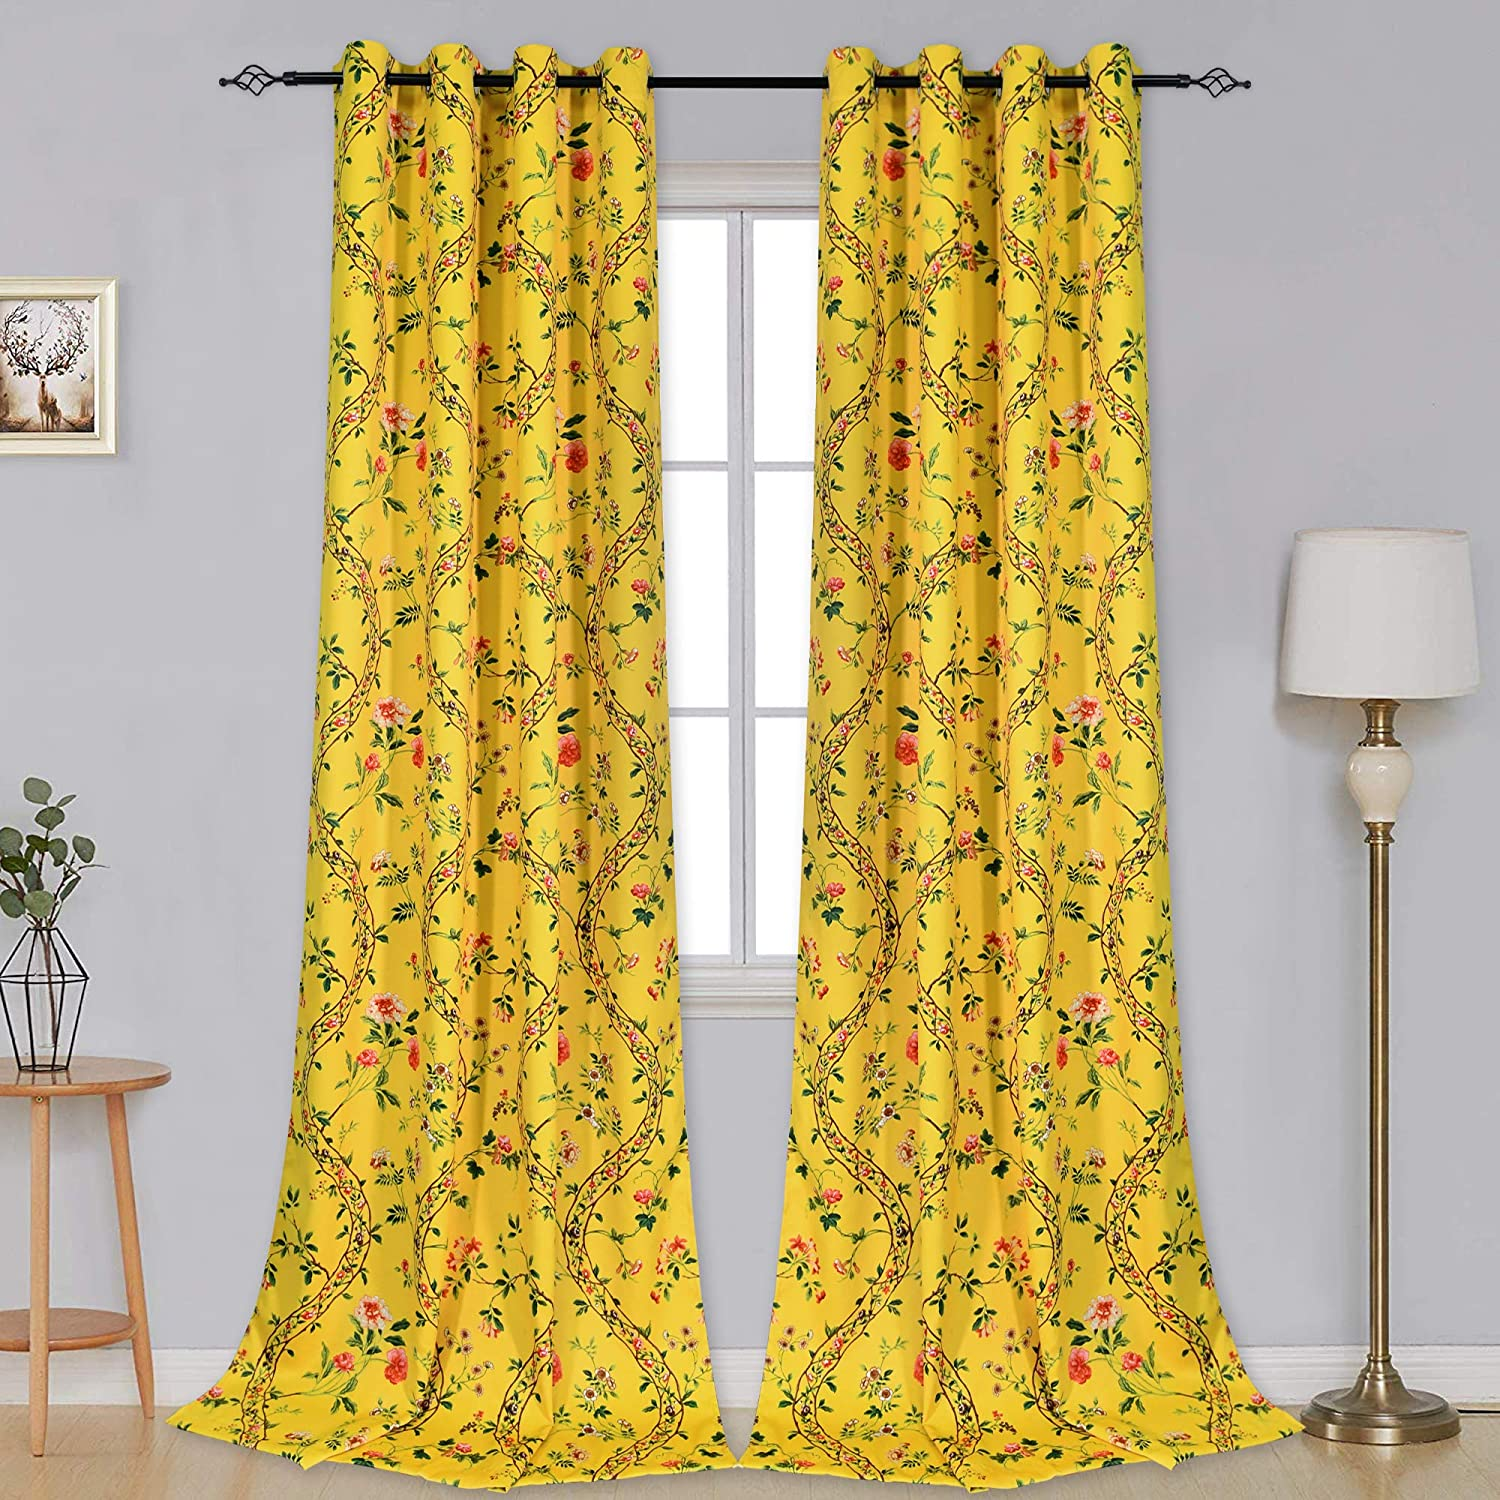 Dark Yellow Vine Floral discount Blackout Time sale Curtains Living Roo Bedroom for